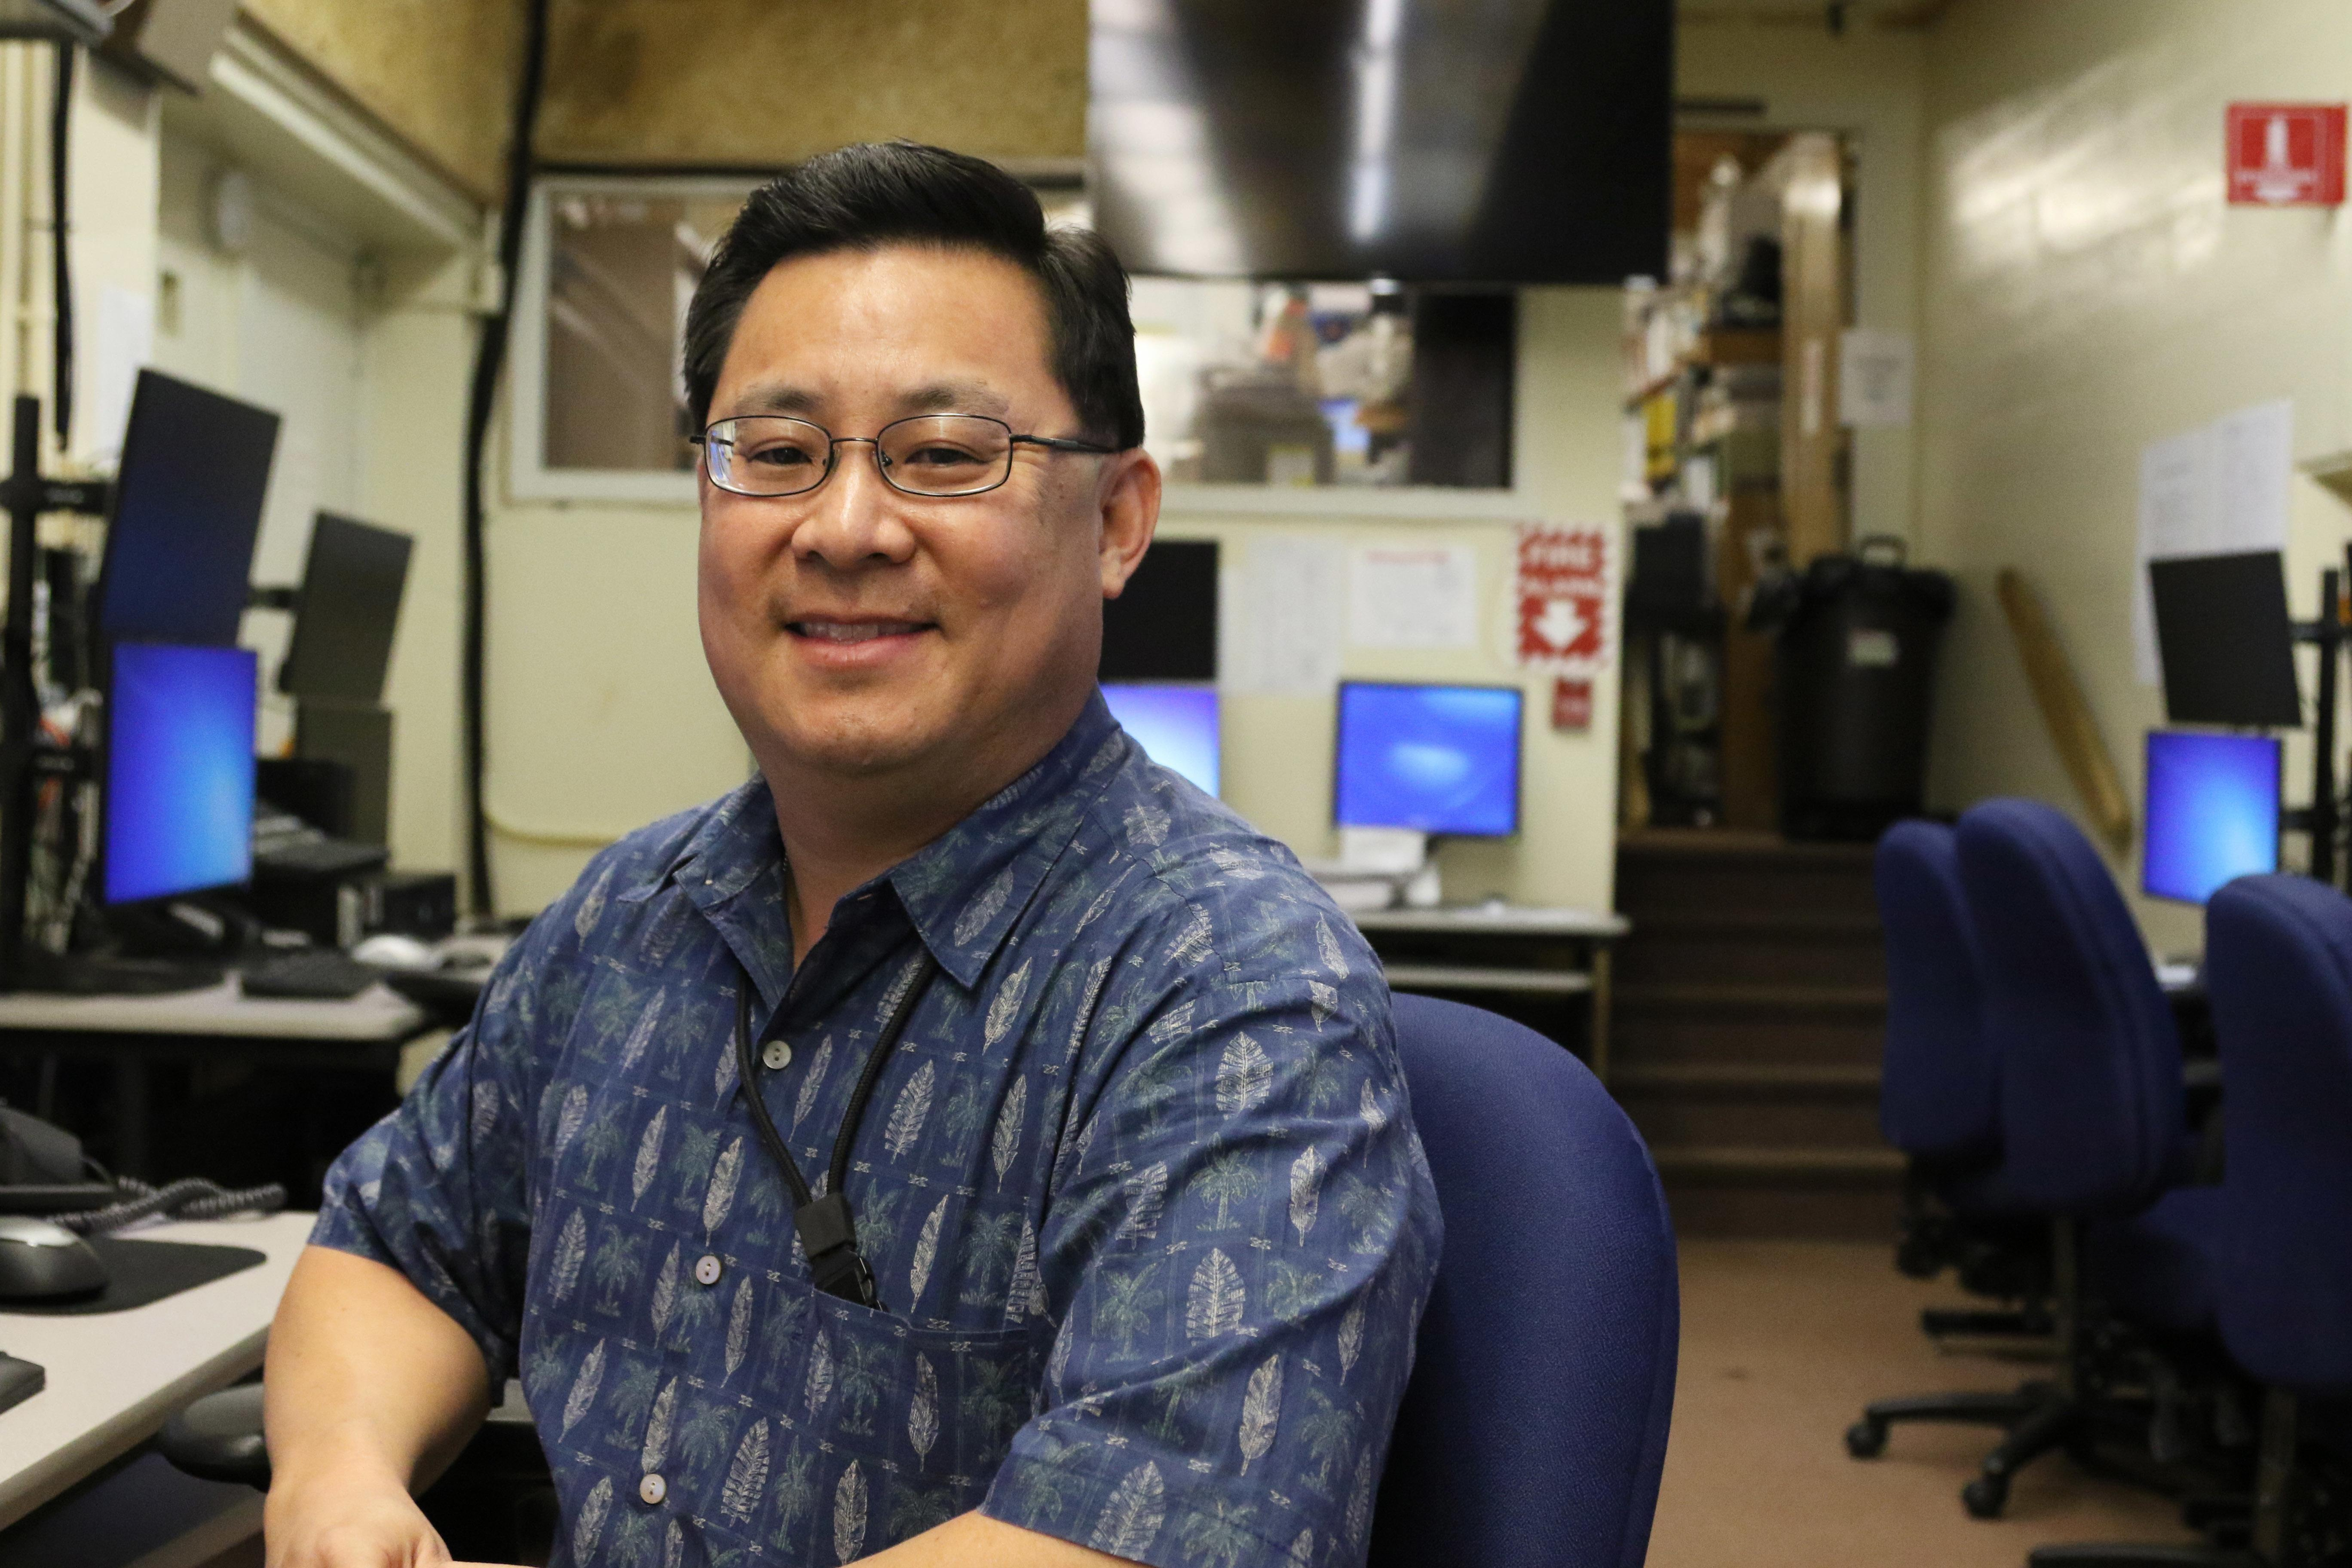 "In this Feb. 1, 2018 photo, Jeffrey Wong, current operations officer for the Hawaii Emergency Management Agency, poses for a photo in Honolulu. He filed a police report after seeing threatening comments online from people who confused him with being the agency employee who mistakenly sent a missile alert. He wants to set the record straight that he's not the so-called ""button-pusher"" and was on a different island when the alert was sent from Honolulu on Jan. 13. (AP Photo/Jennifer Sinco Kelleher)"